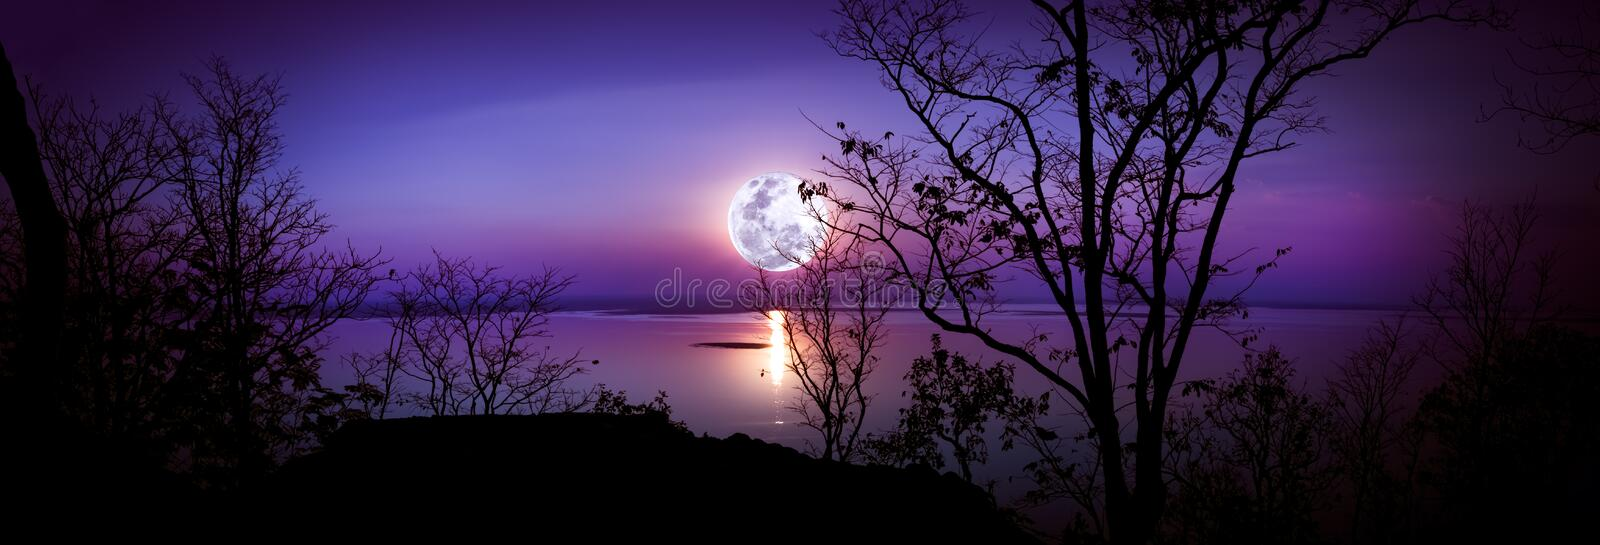 Panorama. Silhouettes of woods and beautiful moonrise, bright full moon would make a great picture. Outdoors. stock photo